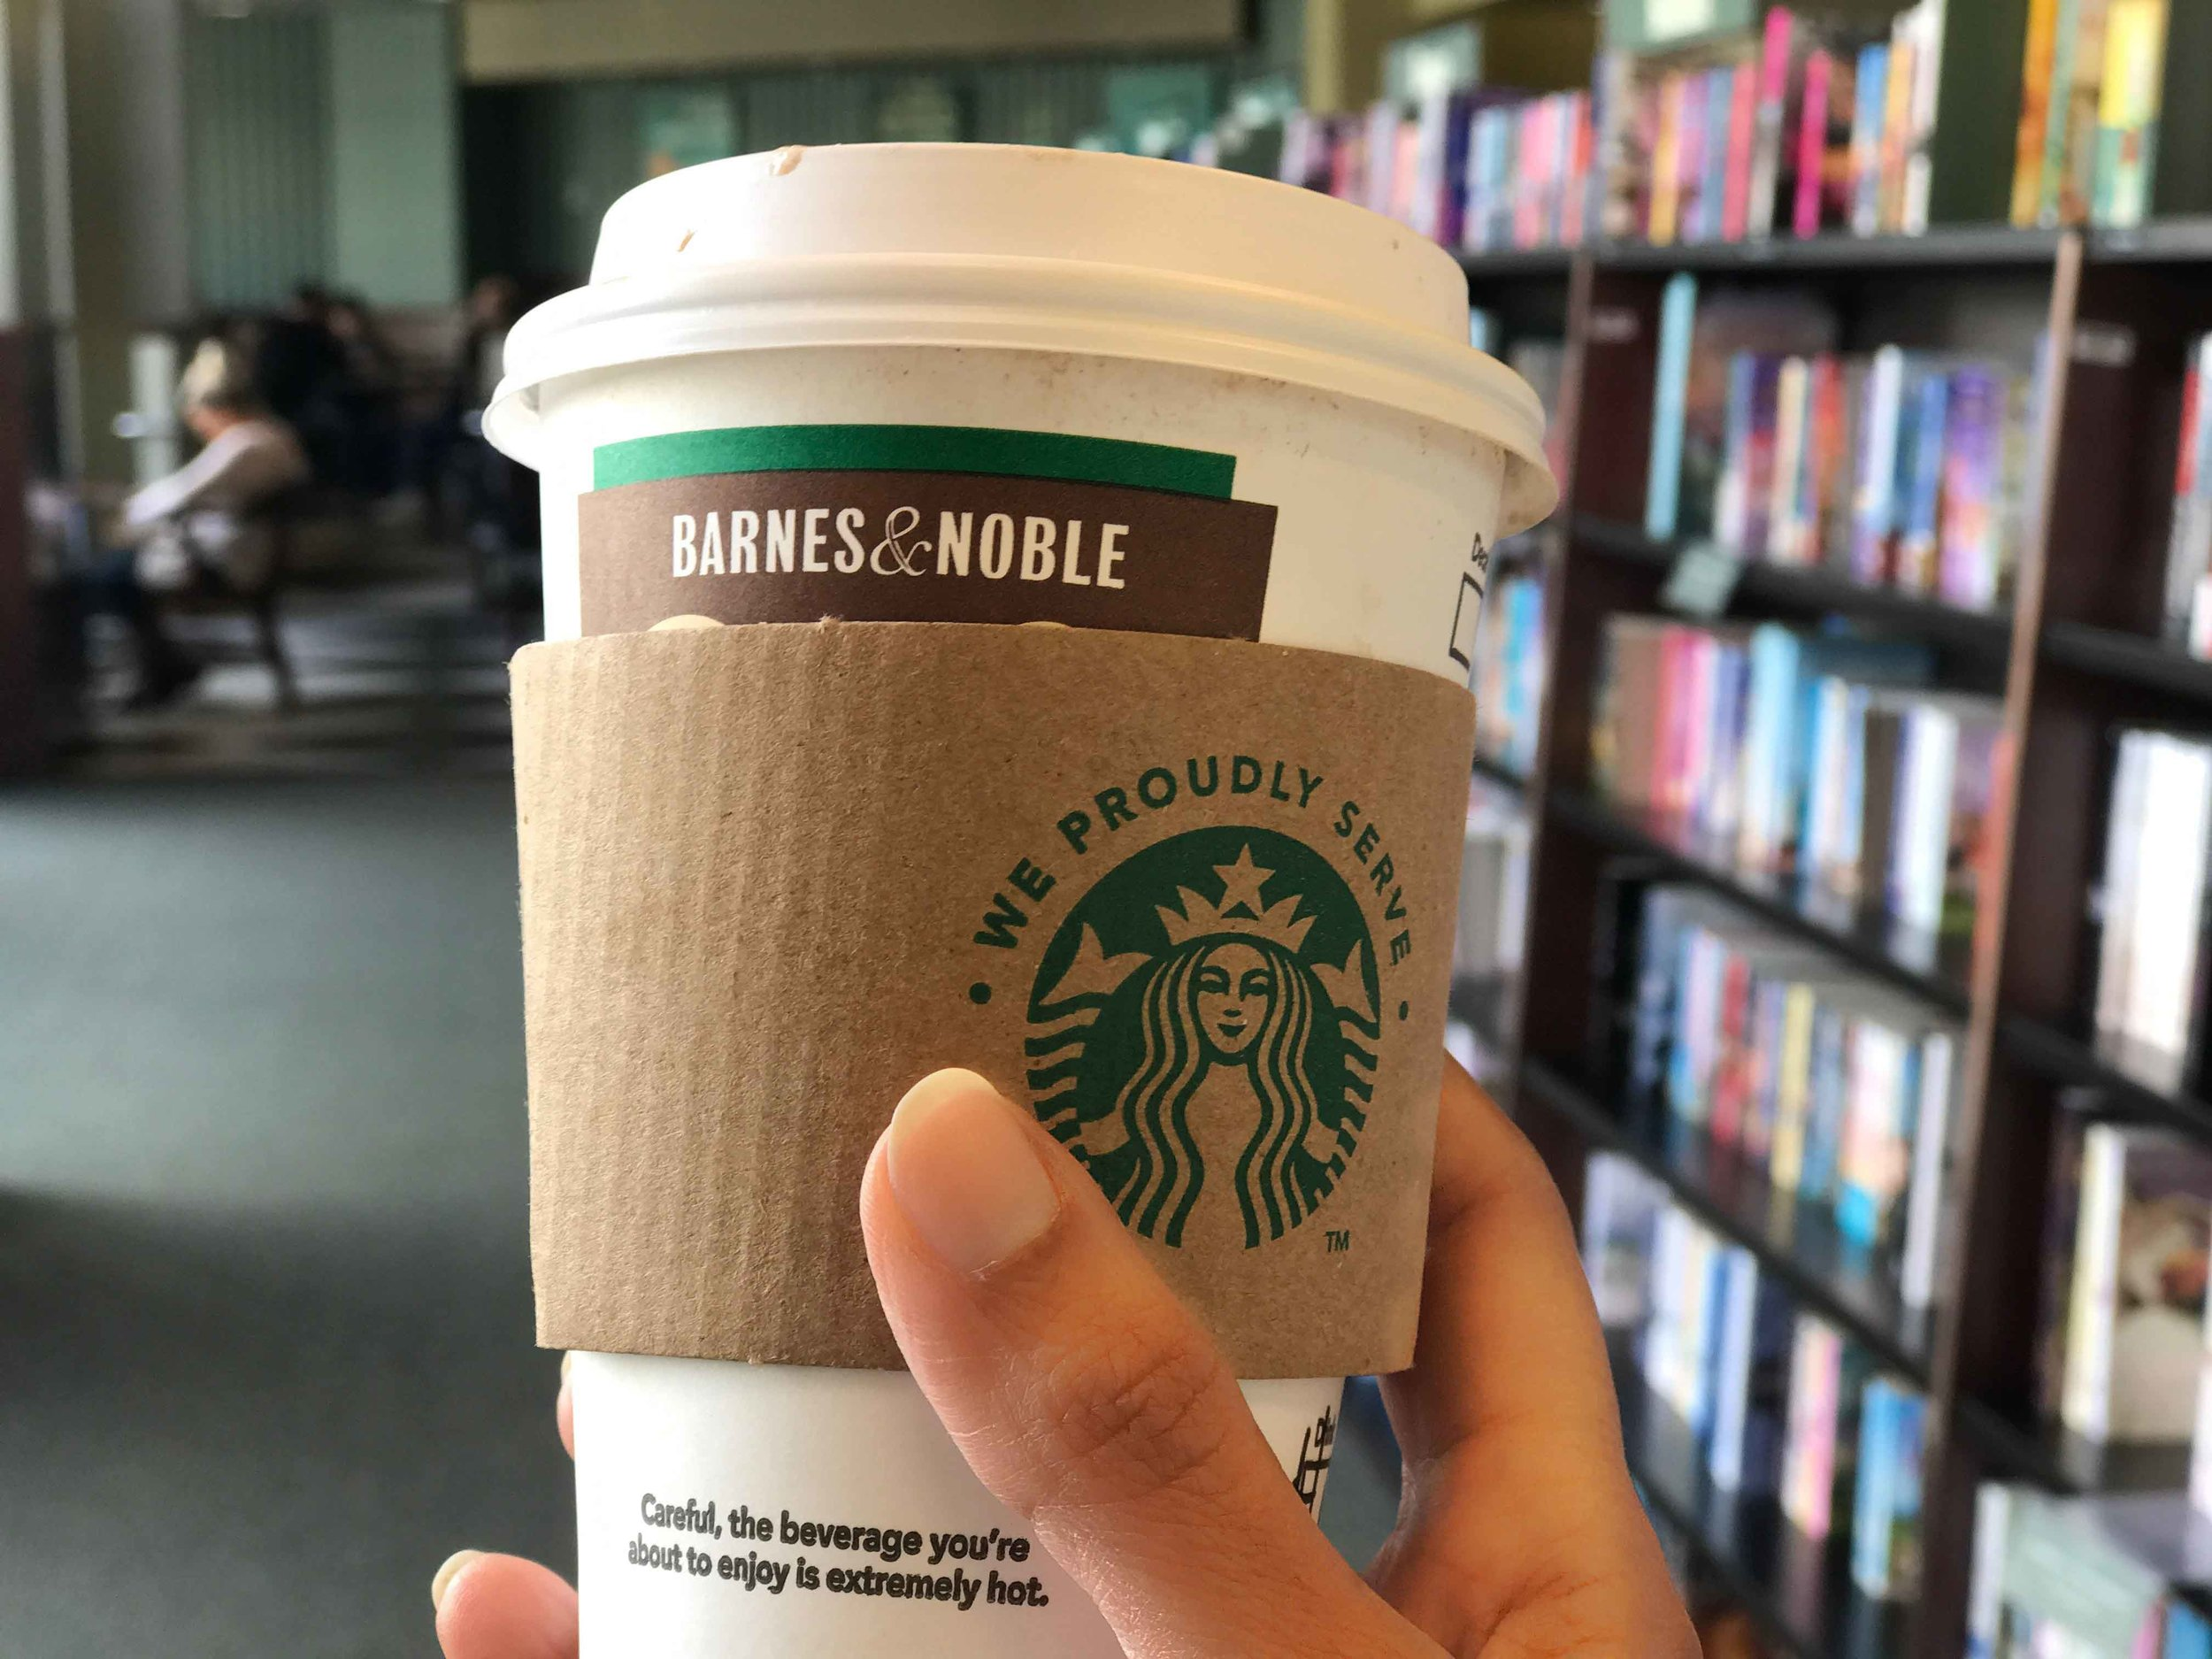 Barns & Noble, The Grove, Los Angeles. Image©thingstodot.com